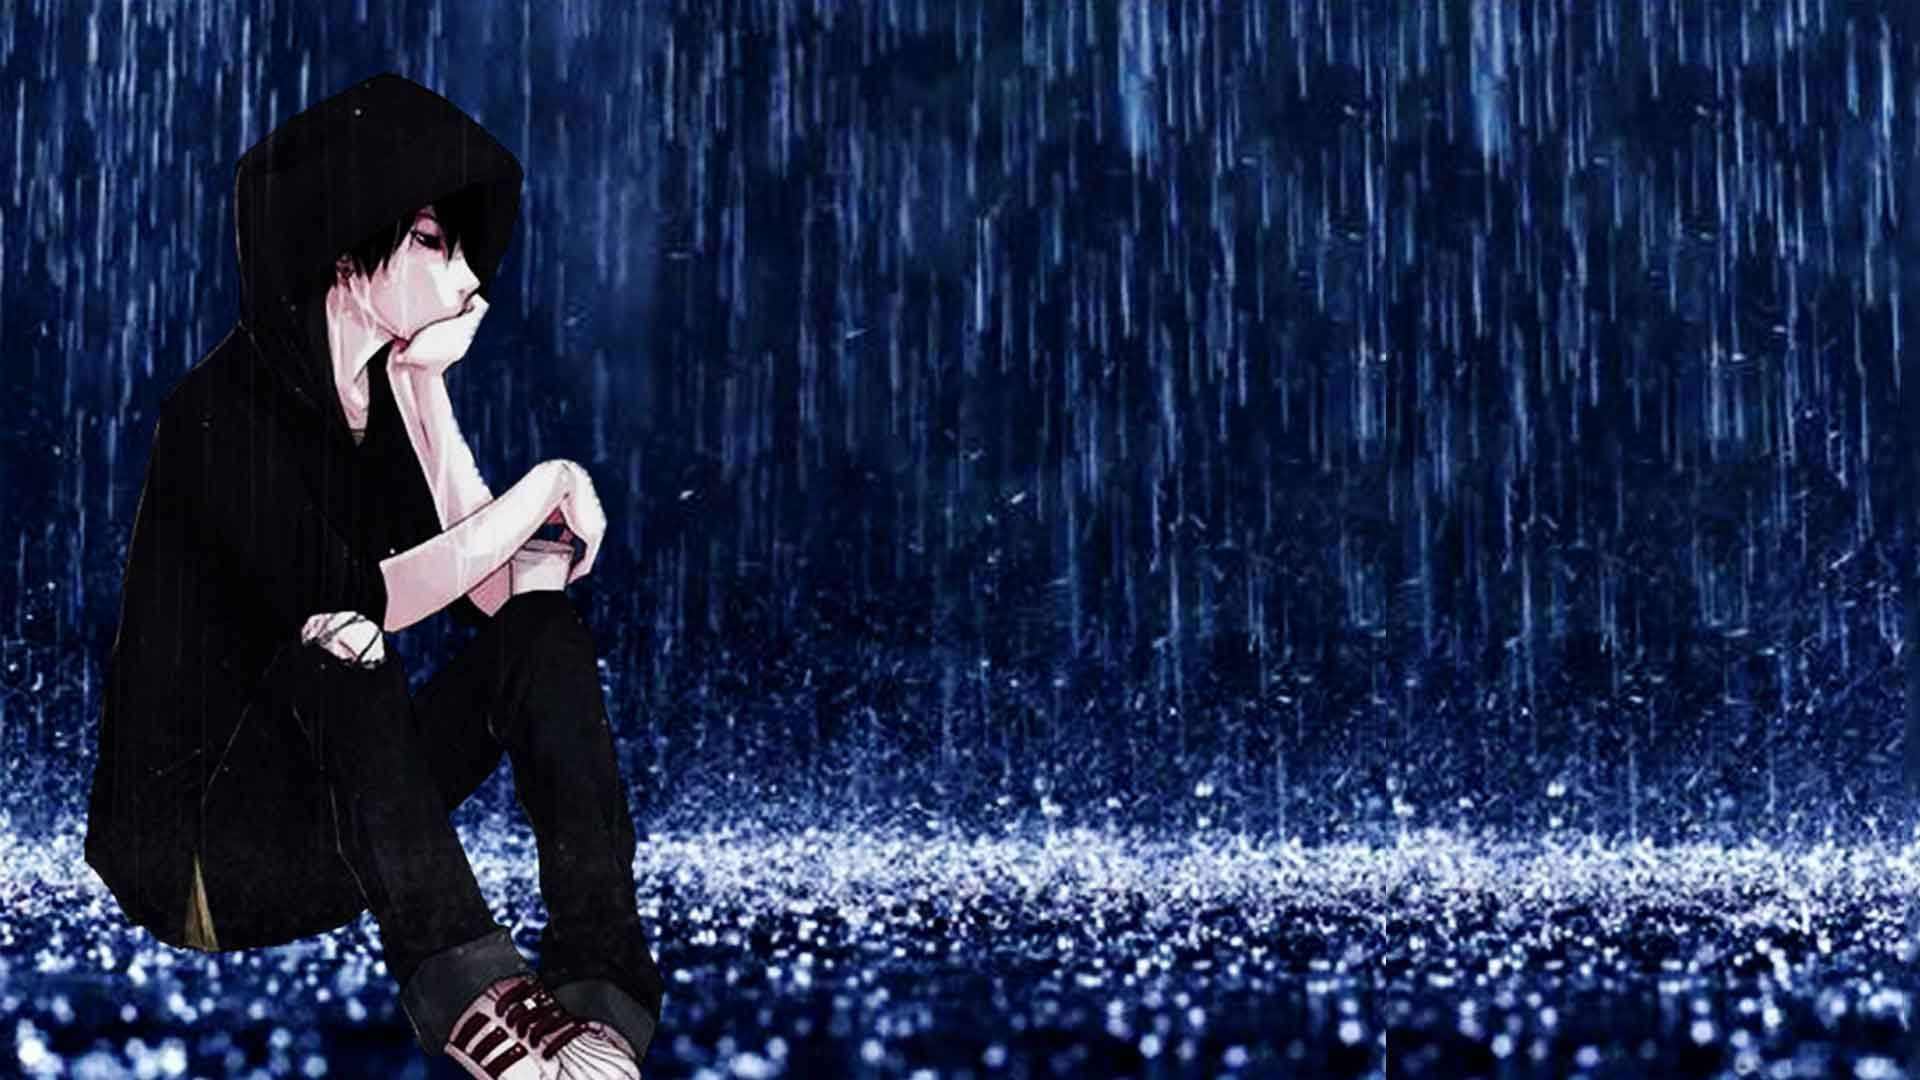 1920x1080 alone boy in the rain sketch sad anime boy images sad cartoon boy